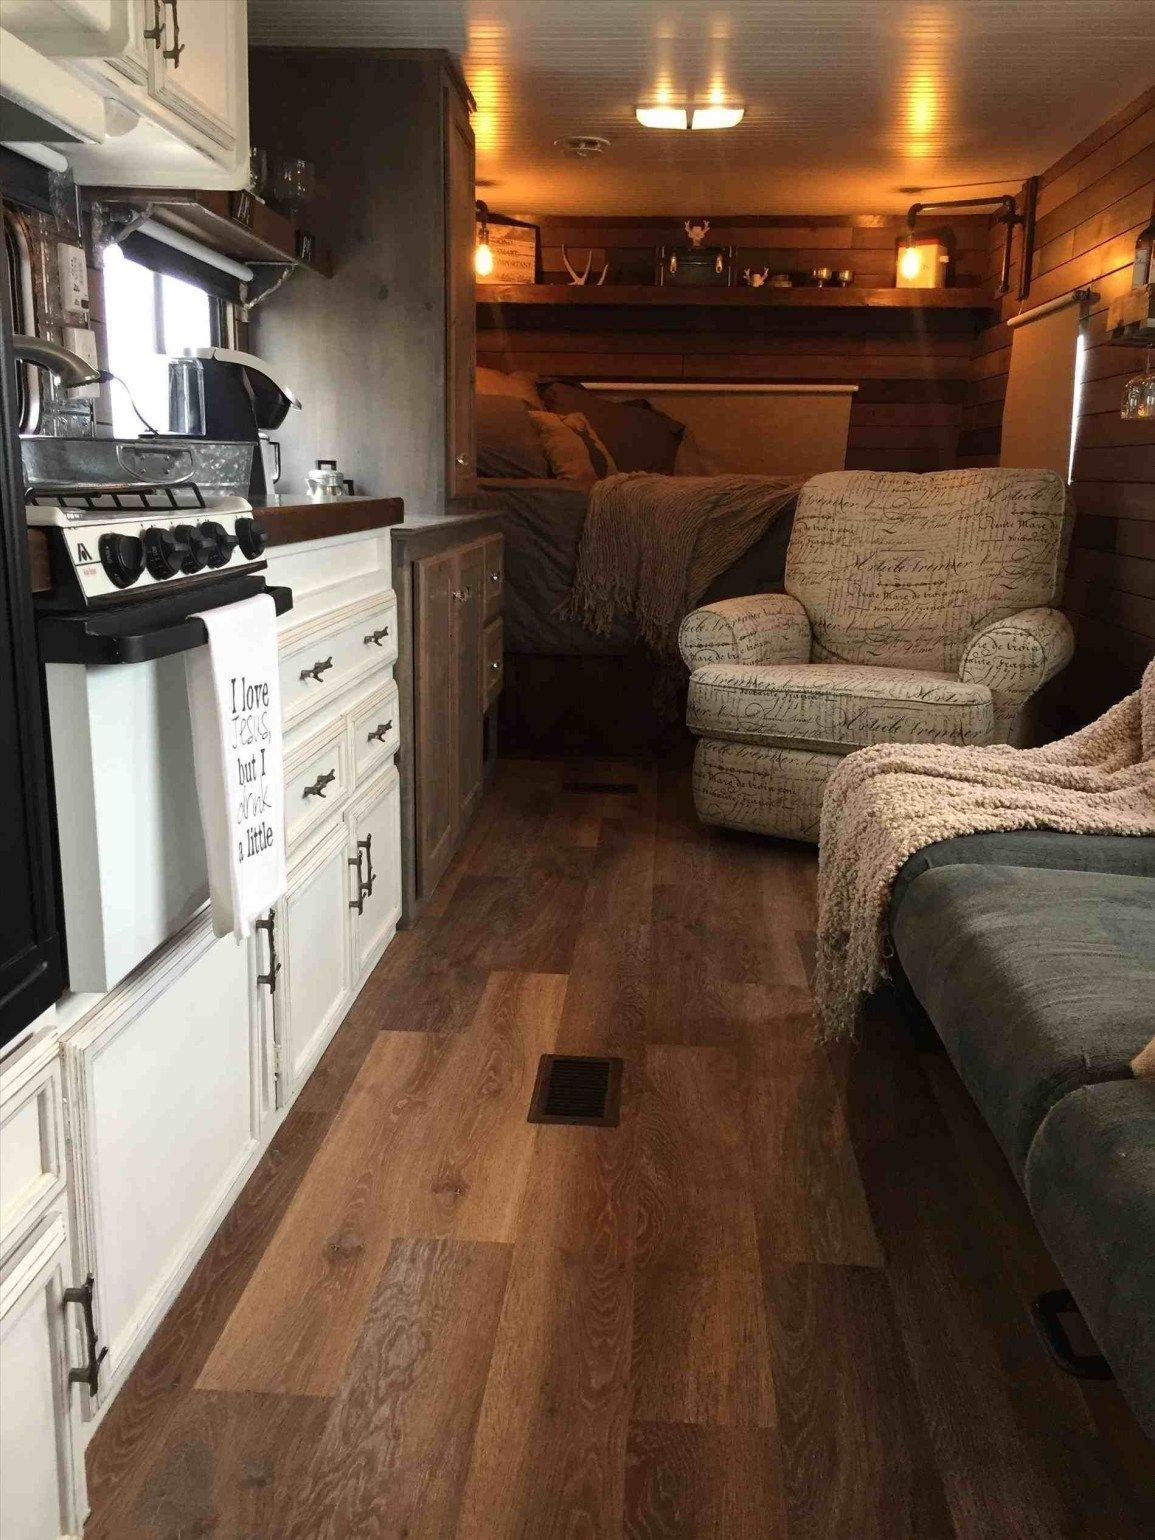 14 Camper Remodel Ideas That Will Inspire You Camper Life